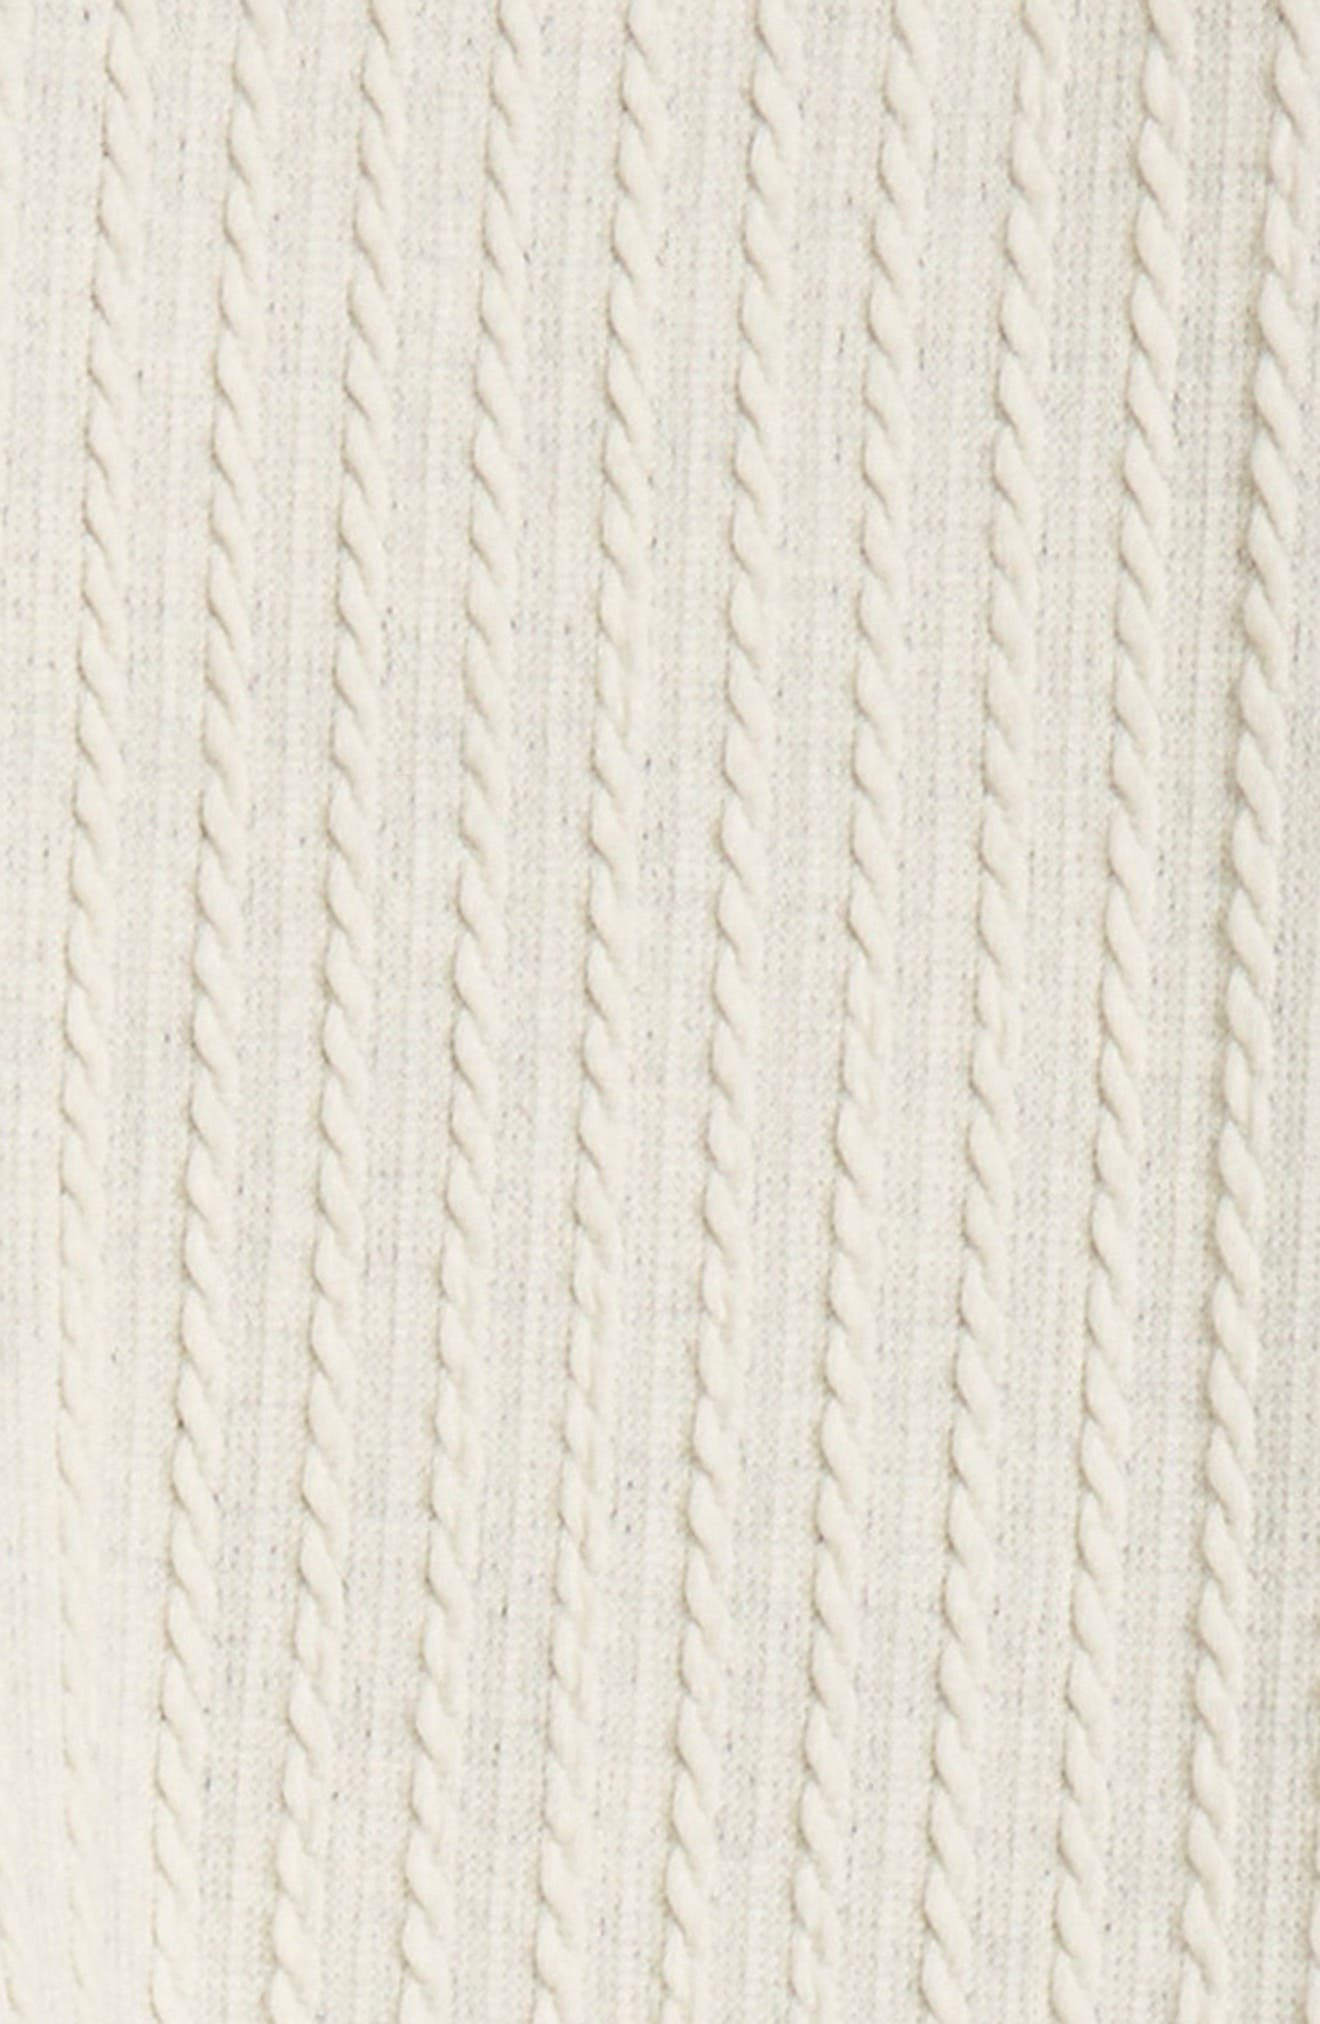 Toddler Girls Tucker  Tate Cable Knit Leggings Size 3T  Ivory